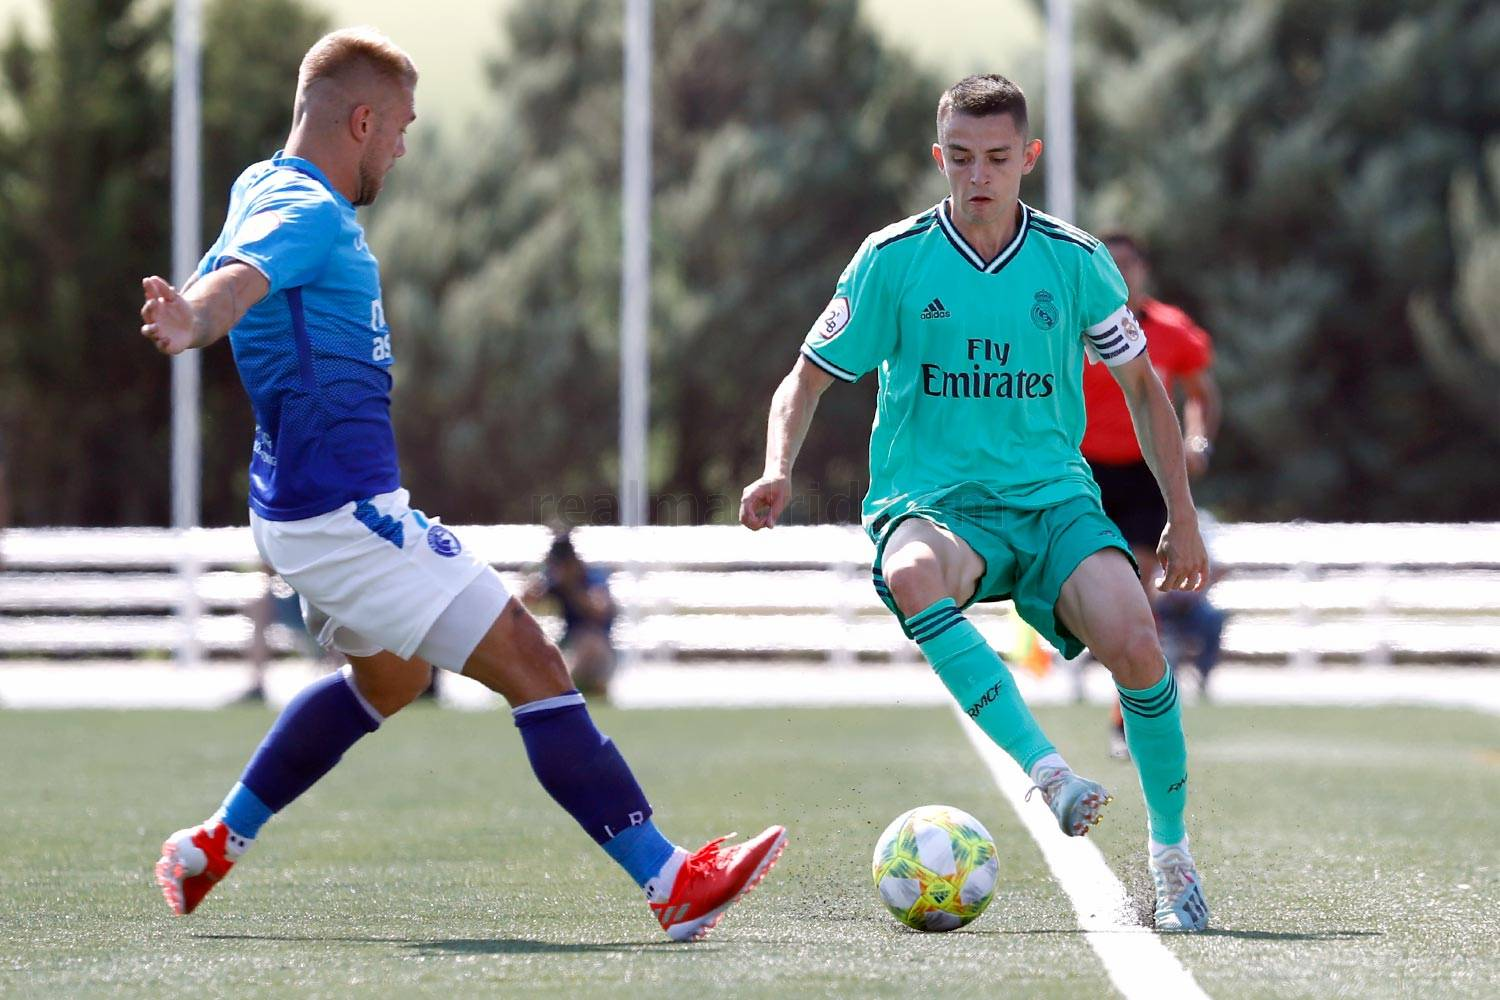 Real Madrid - Las Rozas-Real Madrid Castilla - 25-08-2019